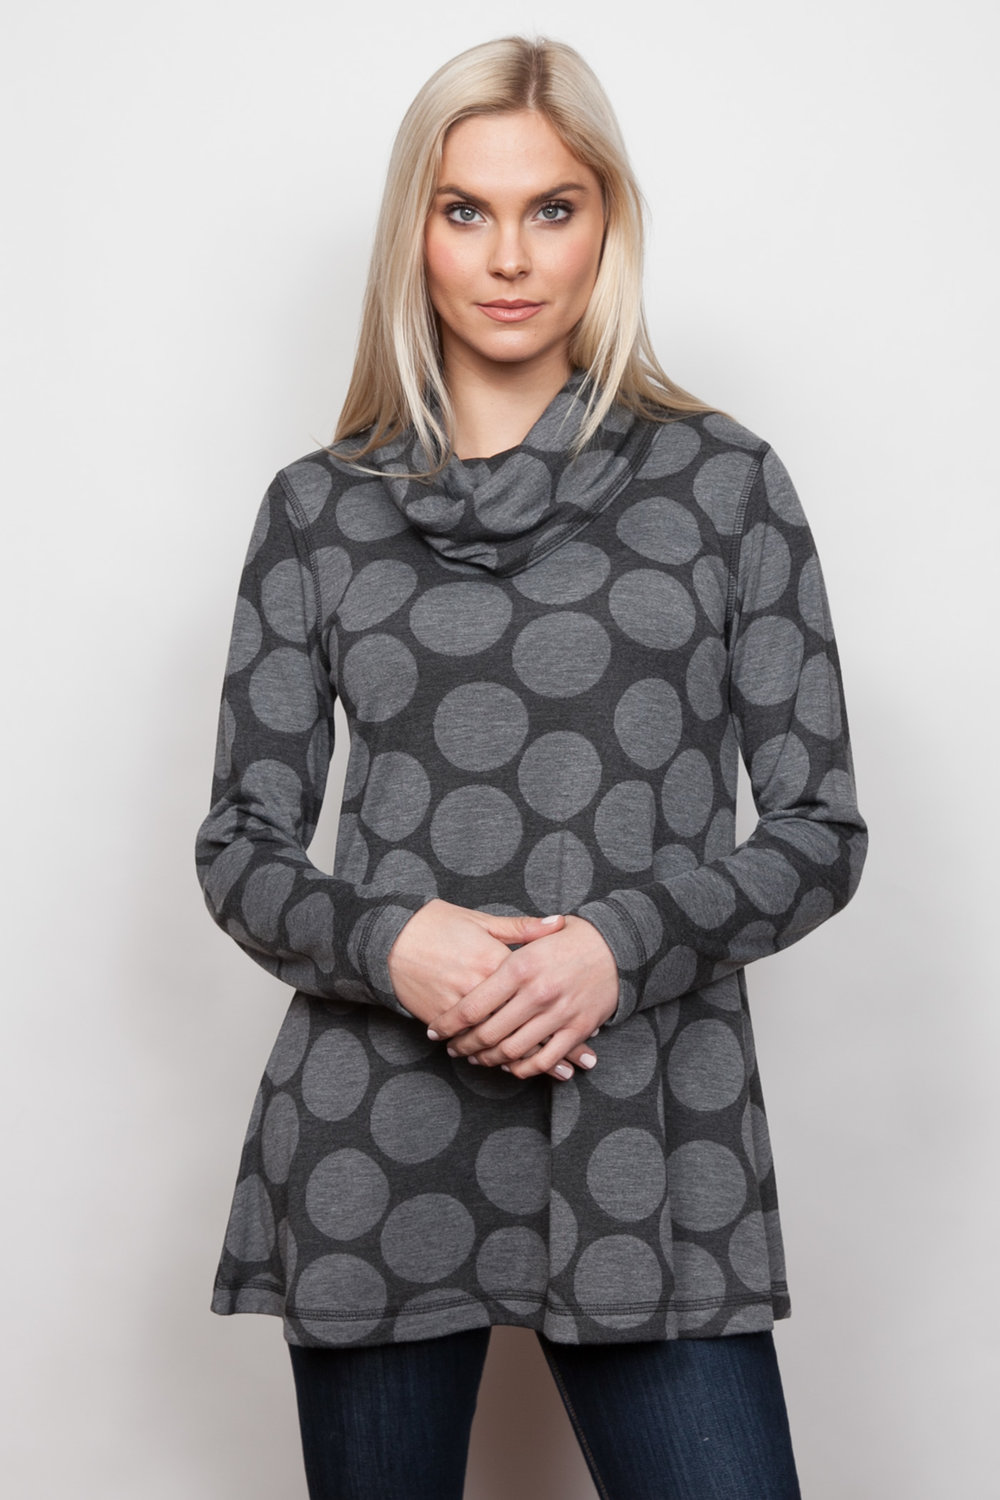 Copy of Style # 85437-18, p 5 </br>Double Faced Large Dot </br>Color: Grey Heather